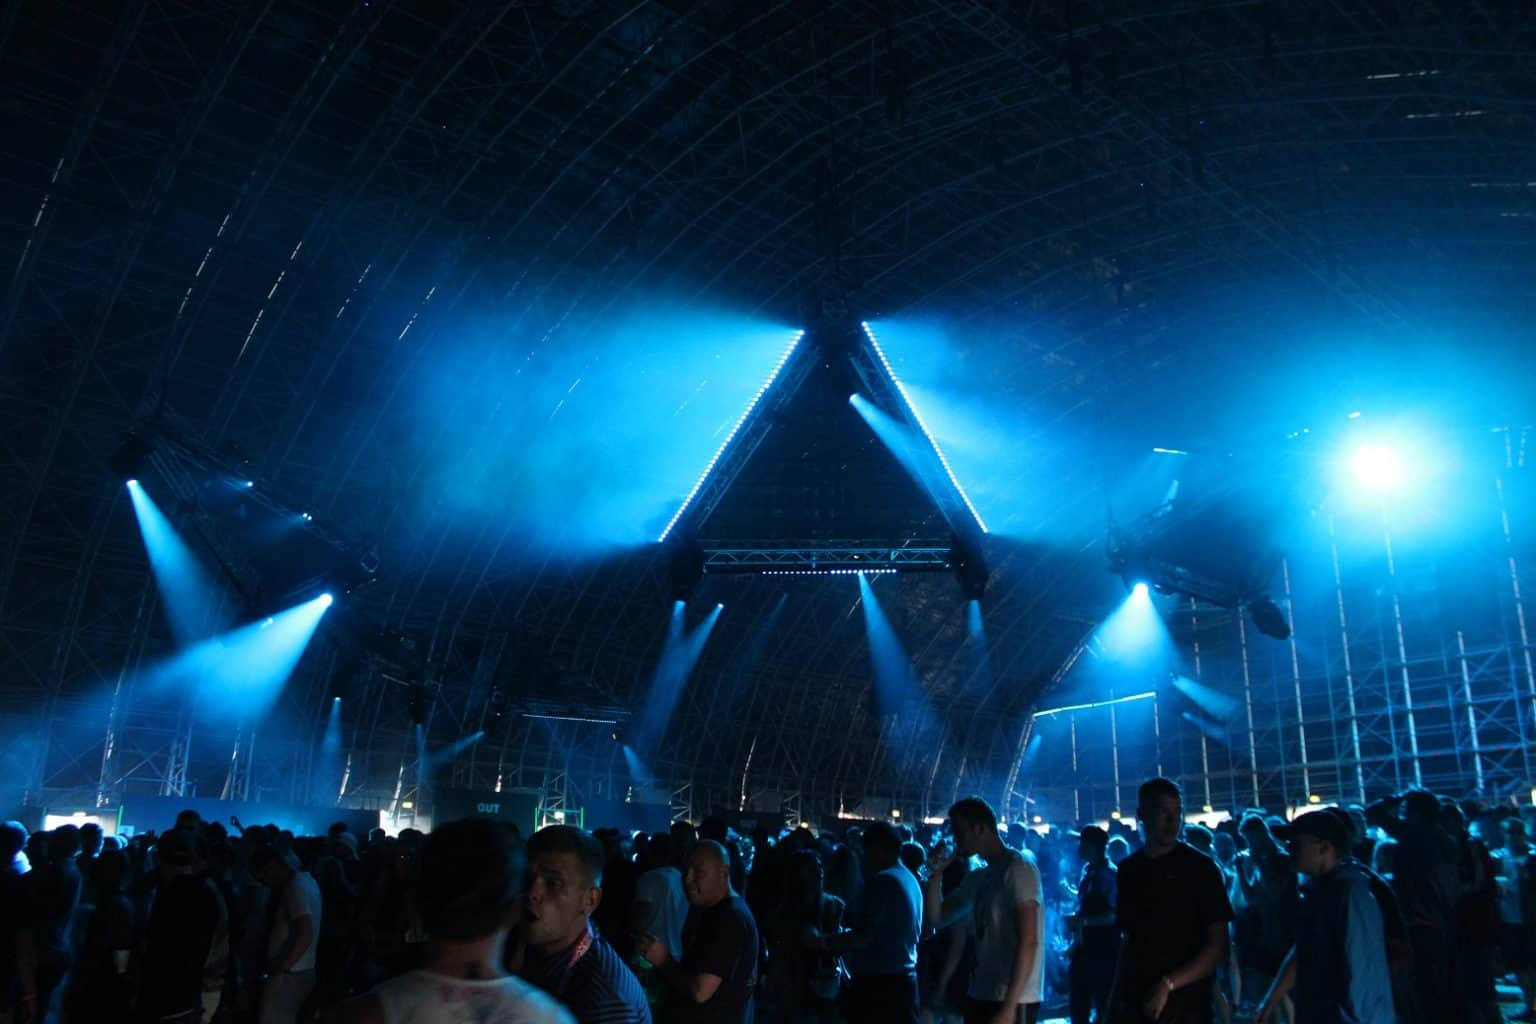 Creamfields 2016 Stealth LED Triangles Vortex Events